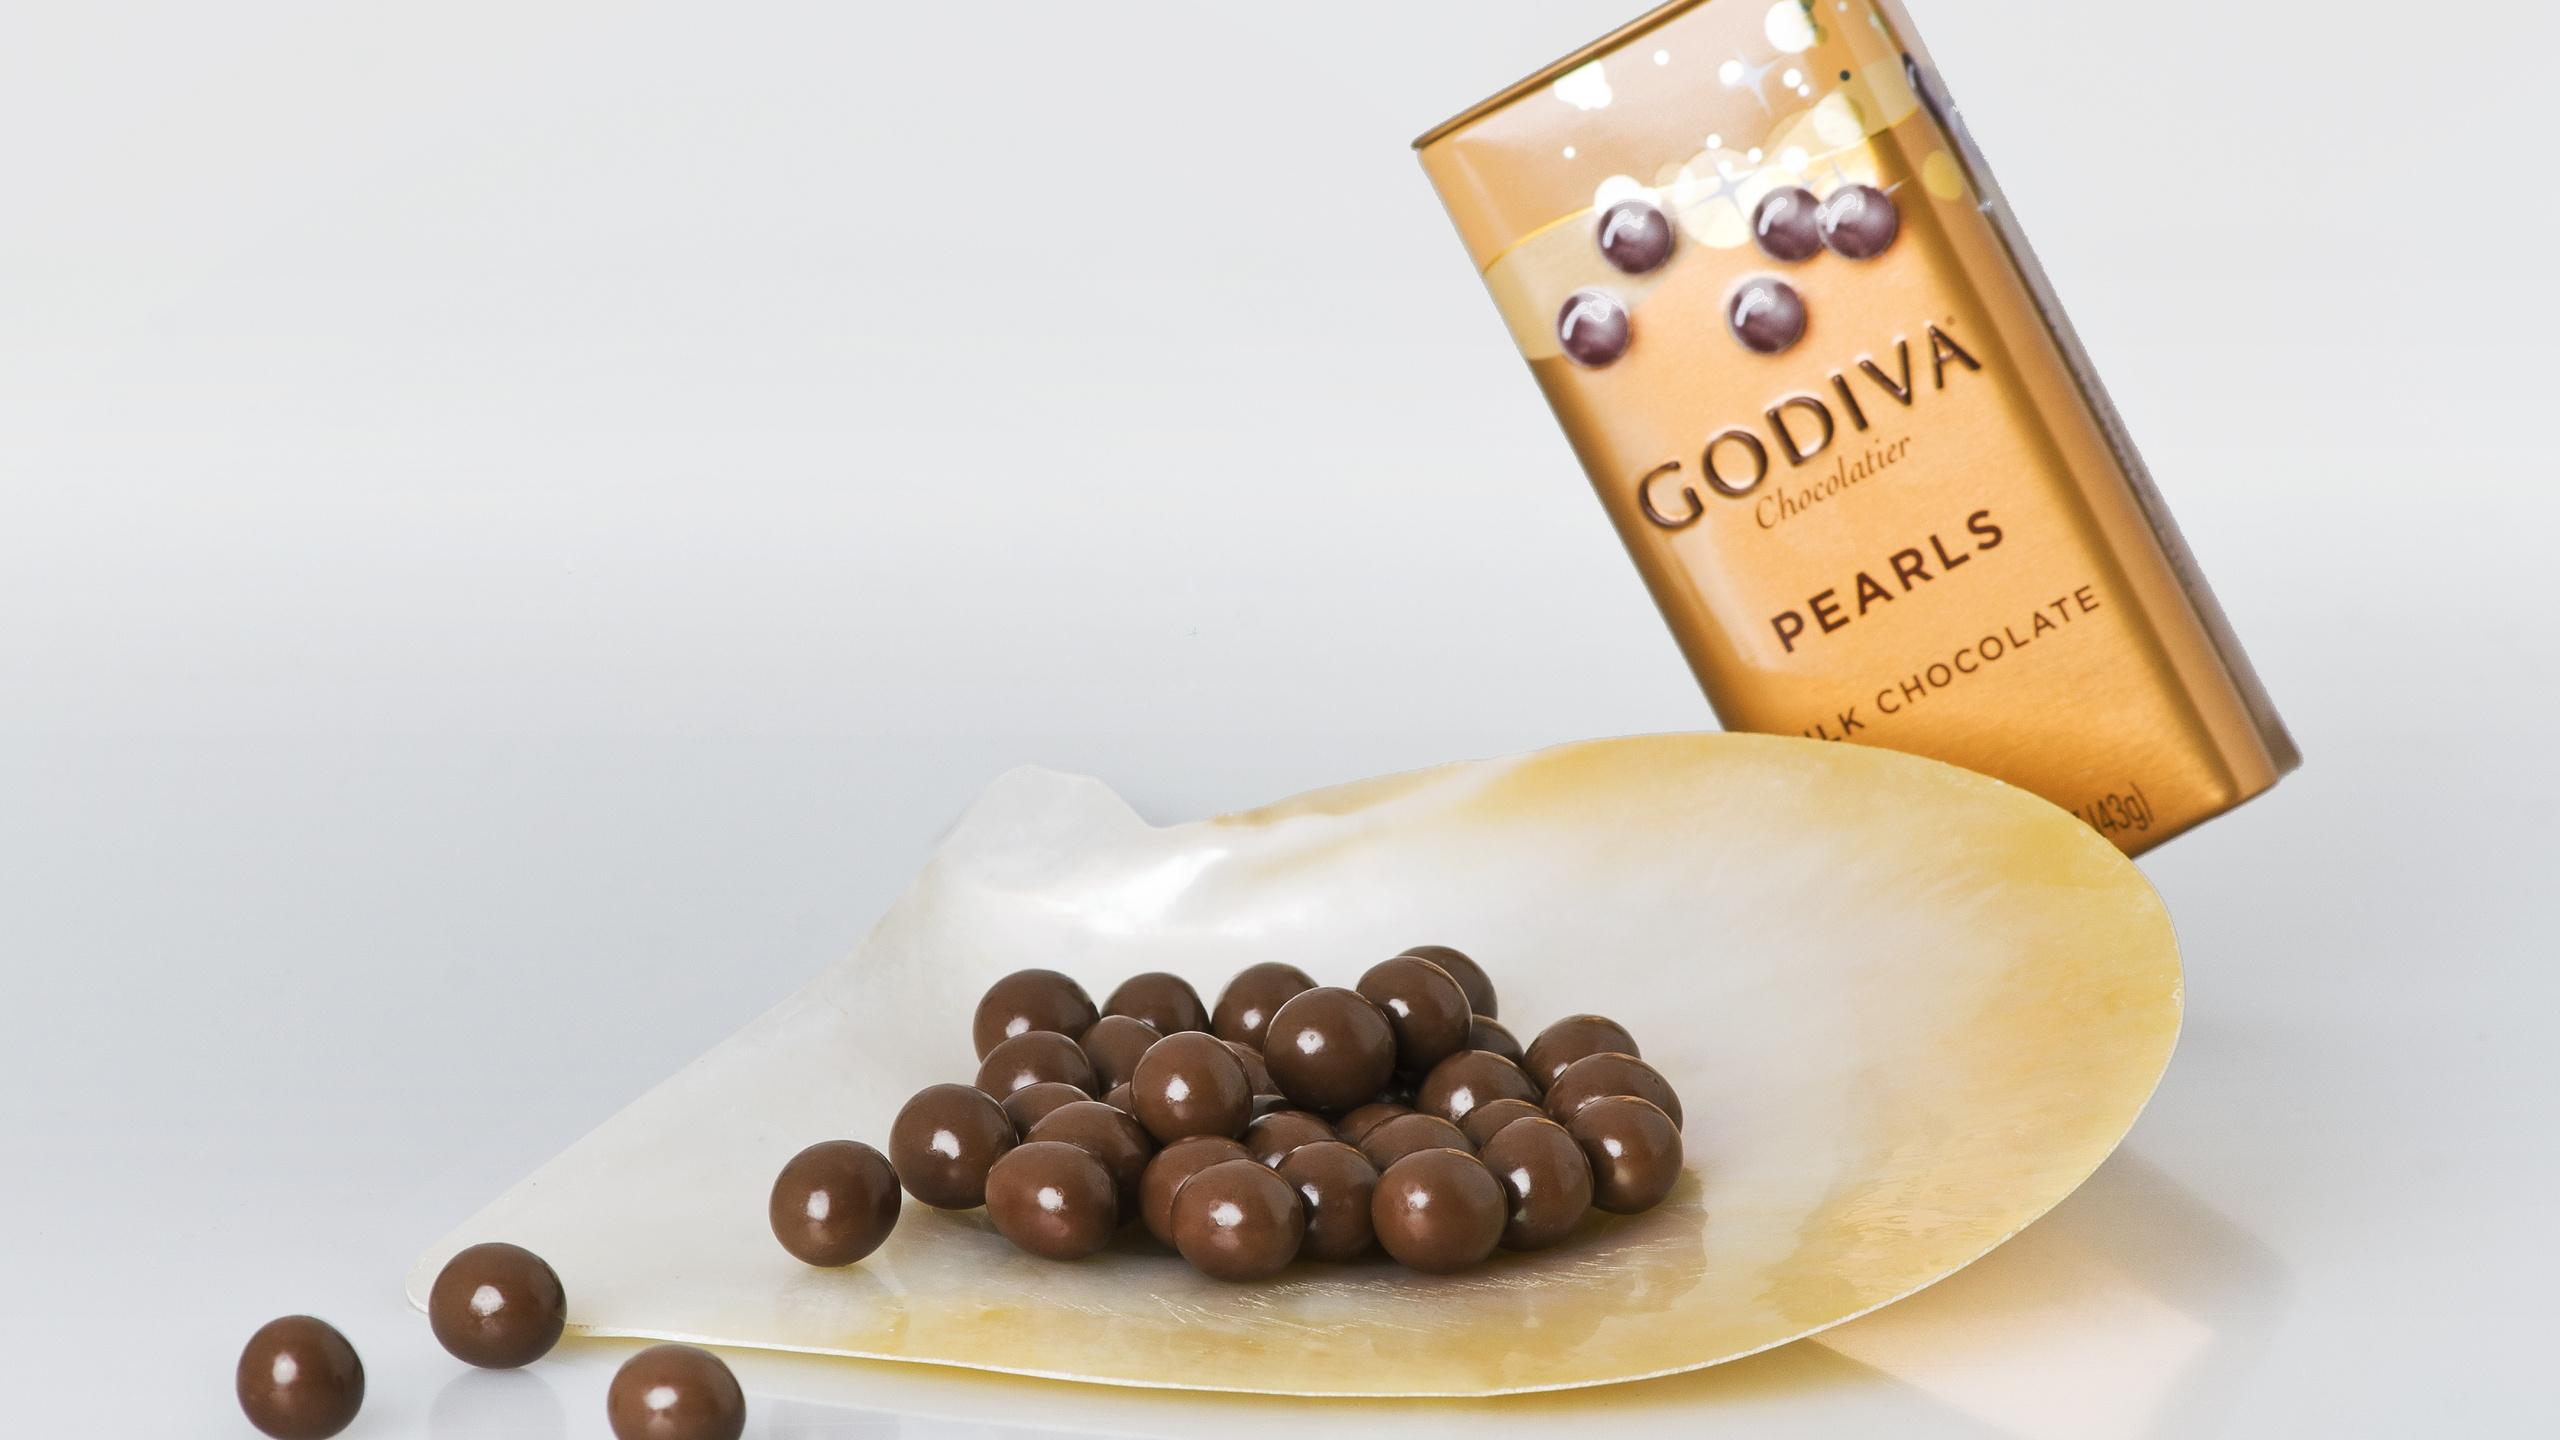 2560x1440 Godiva, Godiva Logo, Godiva Chocolate Dragees Wallpapers